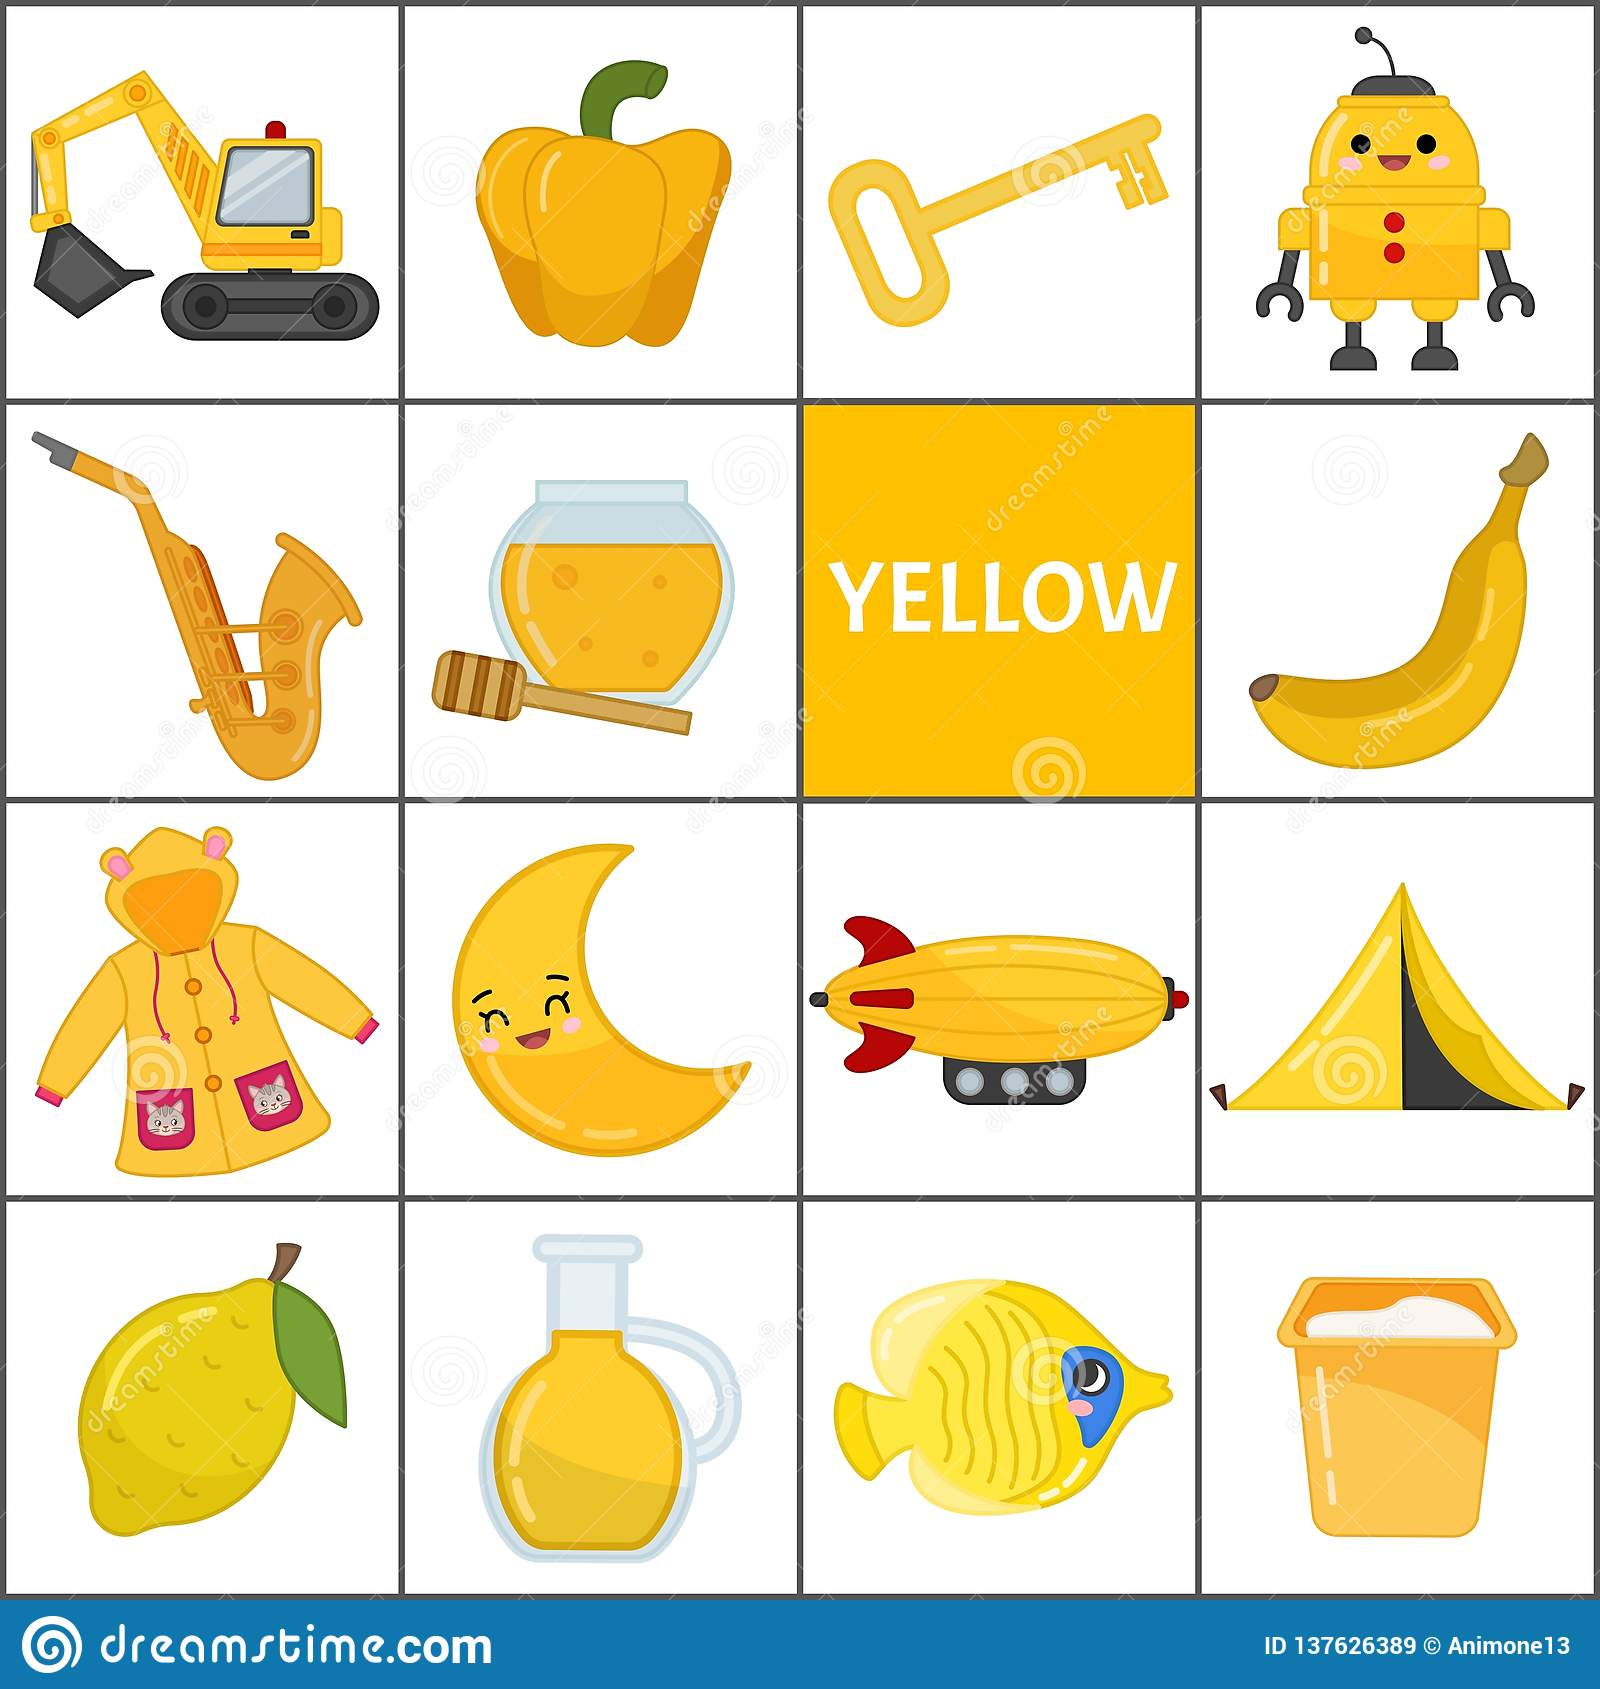 Kids Learning Material Stock Vector Illustration Of Icon